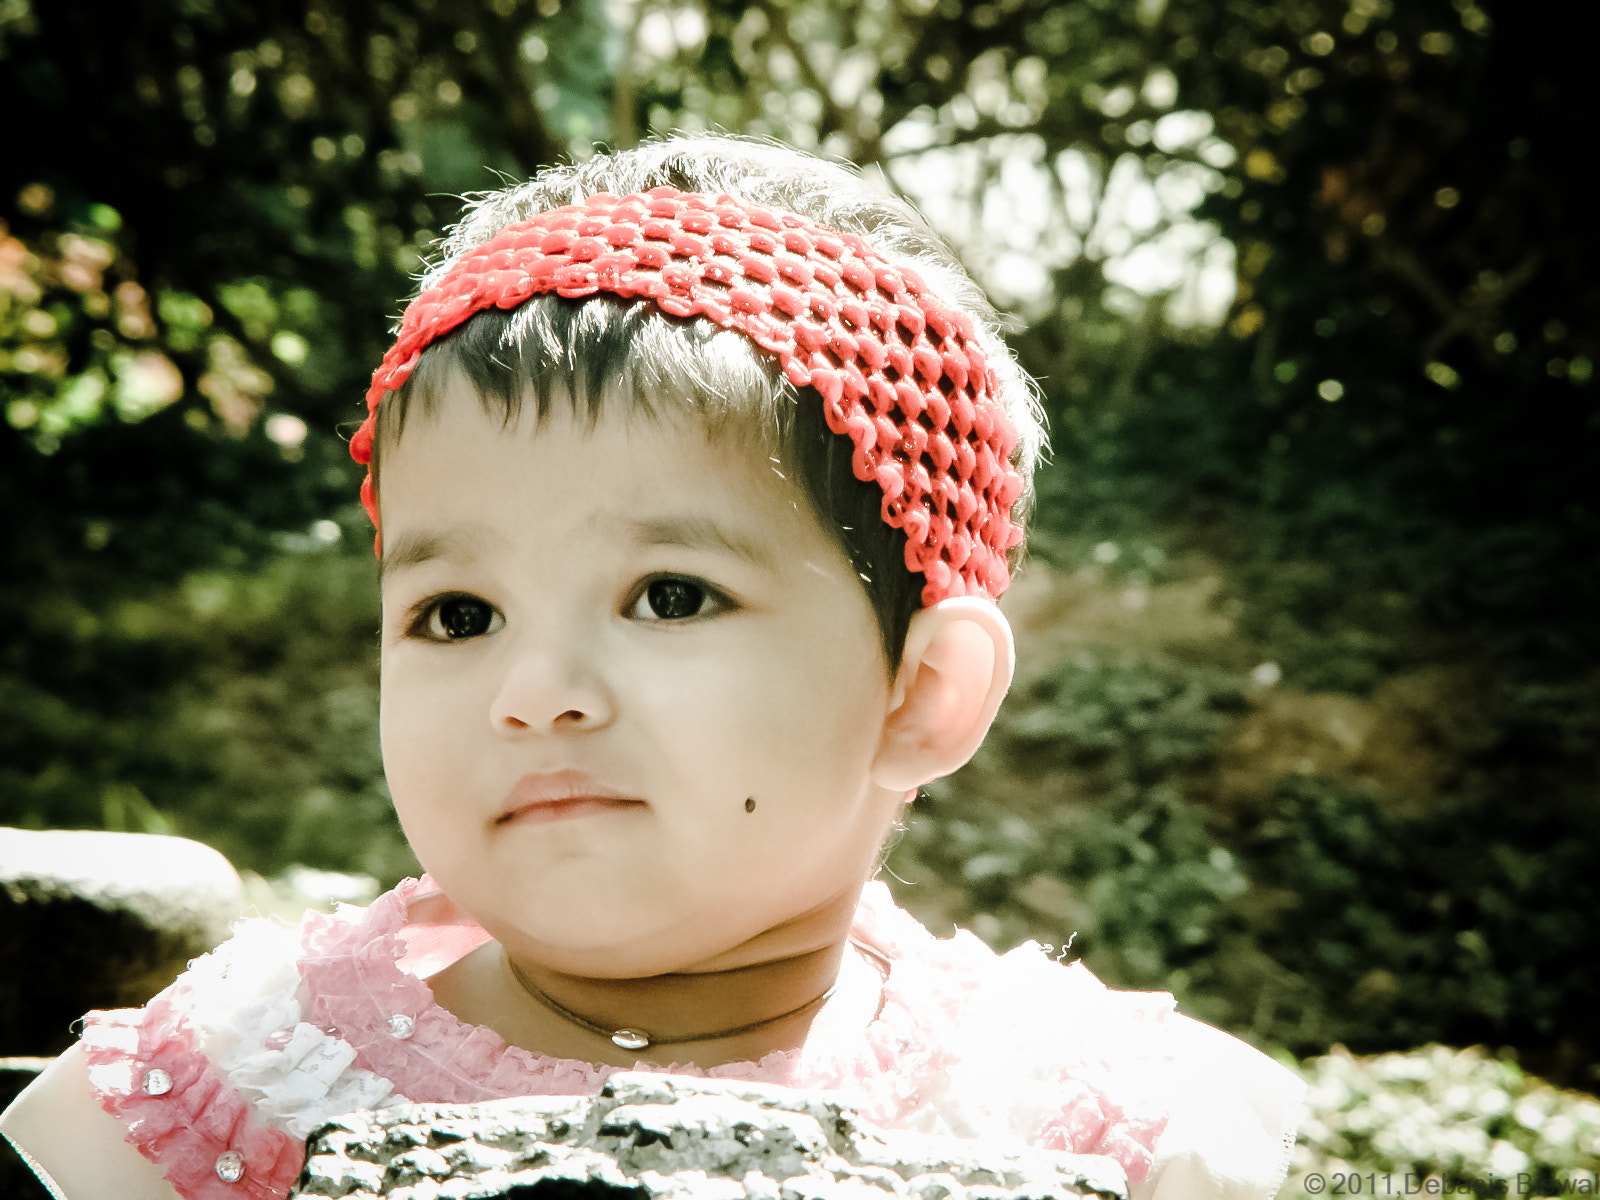 Photograph Innocence by Debasis Biswal on 500px